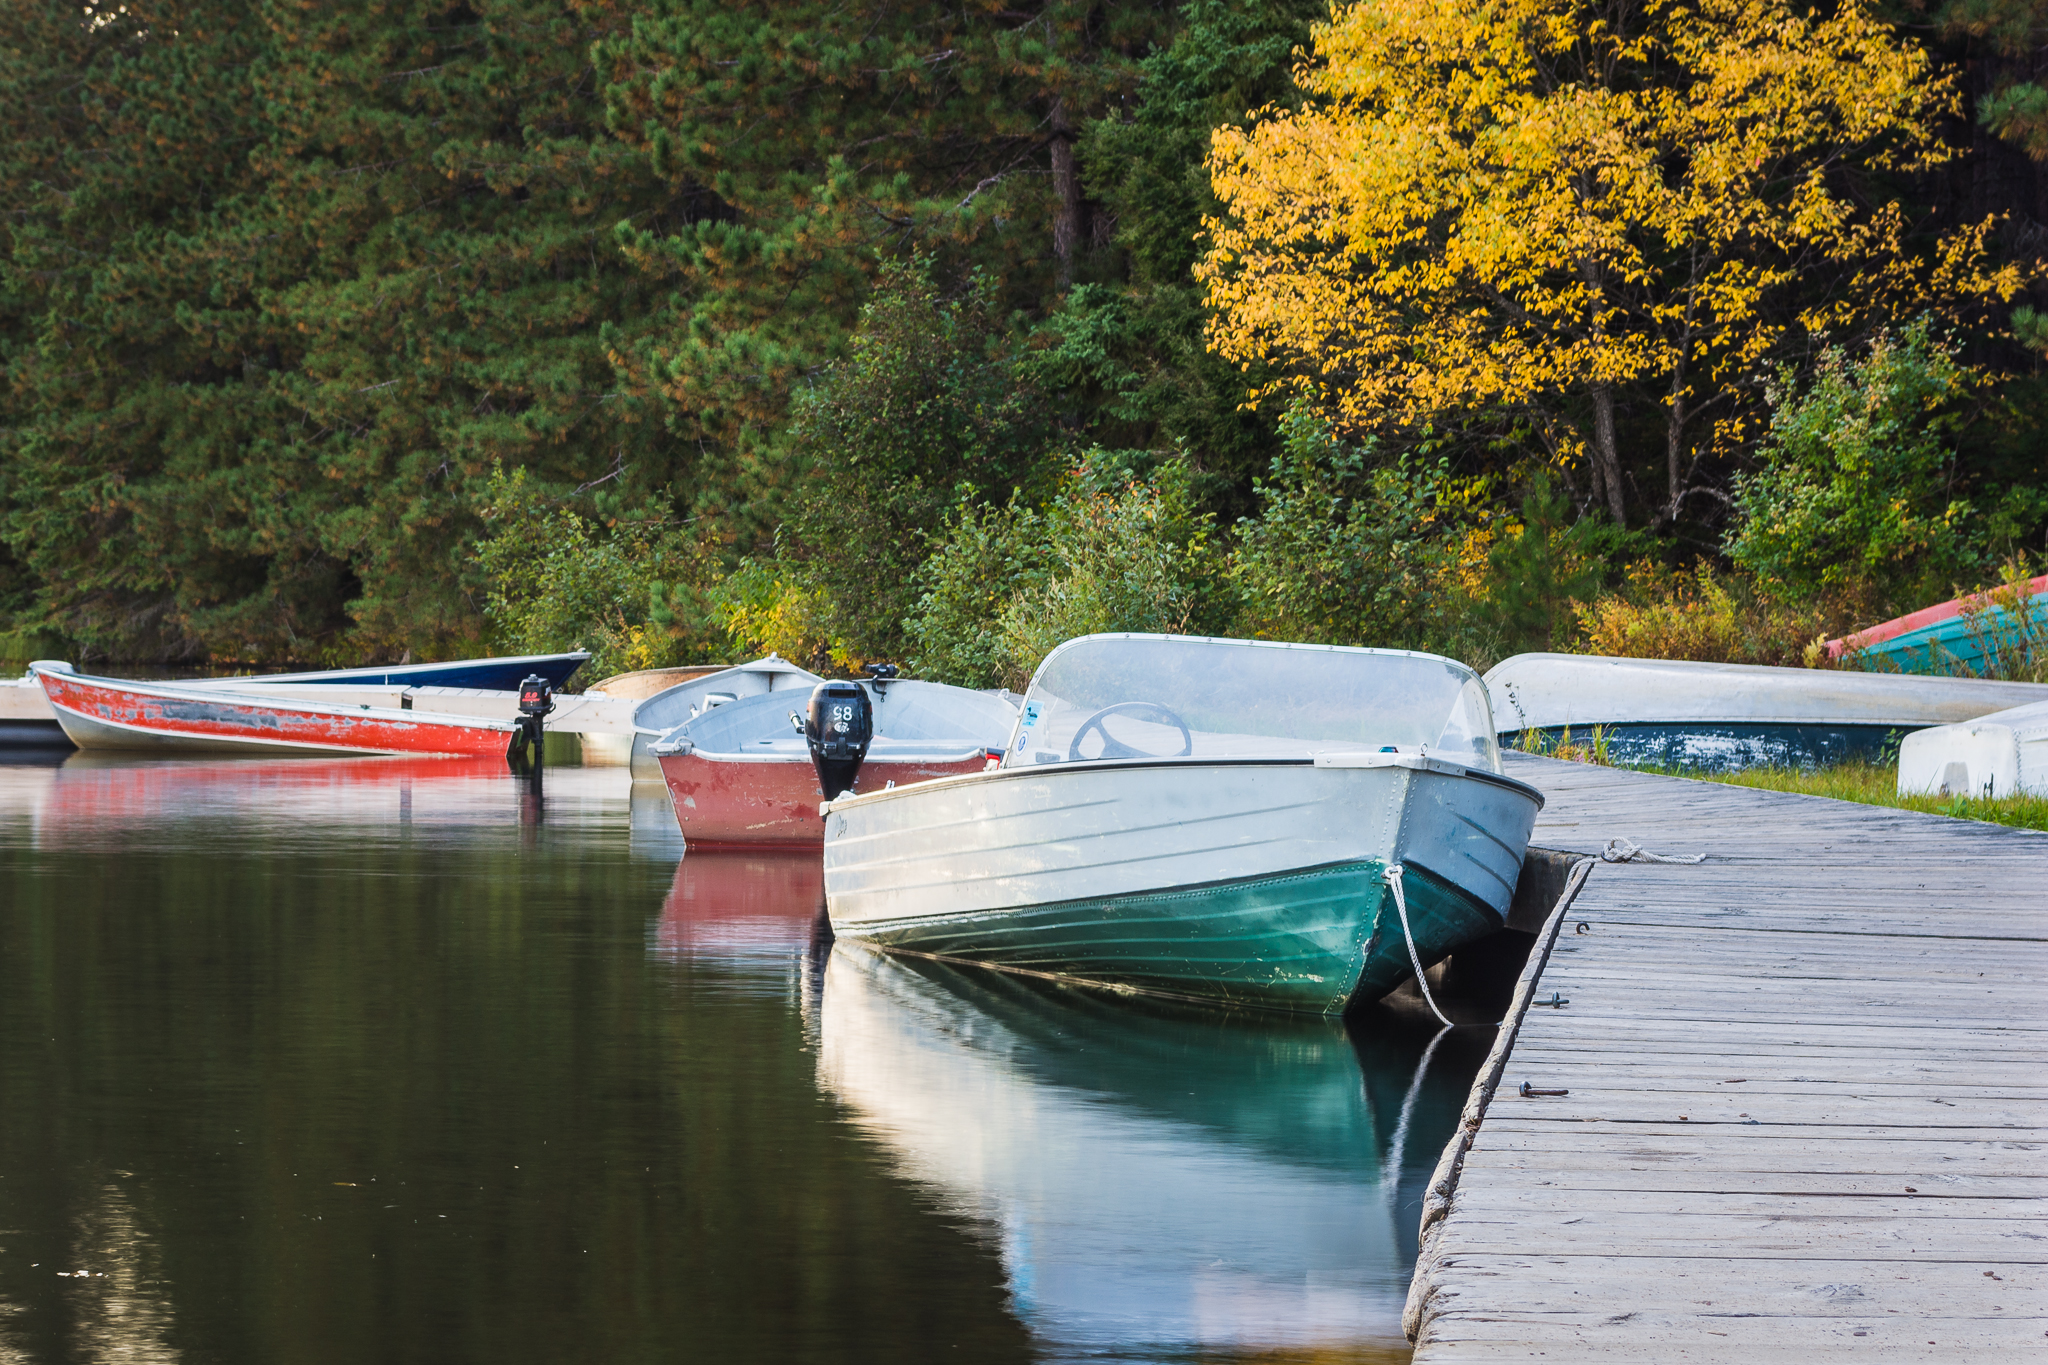 Boat Dock at Cache Lake (0.8s, f/11, ISO100)